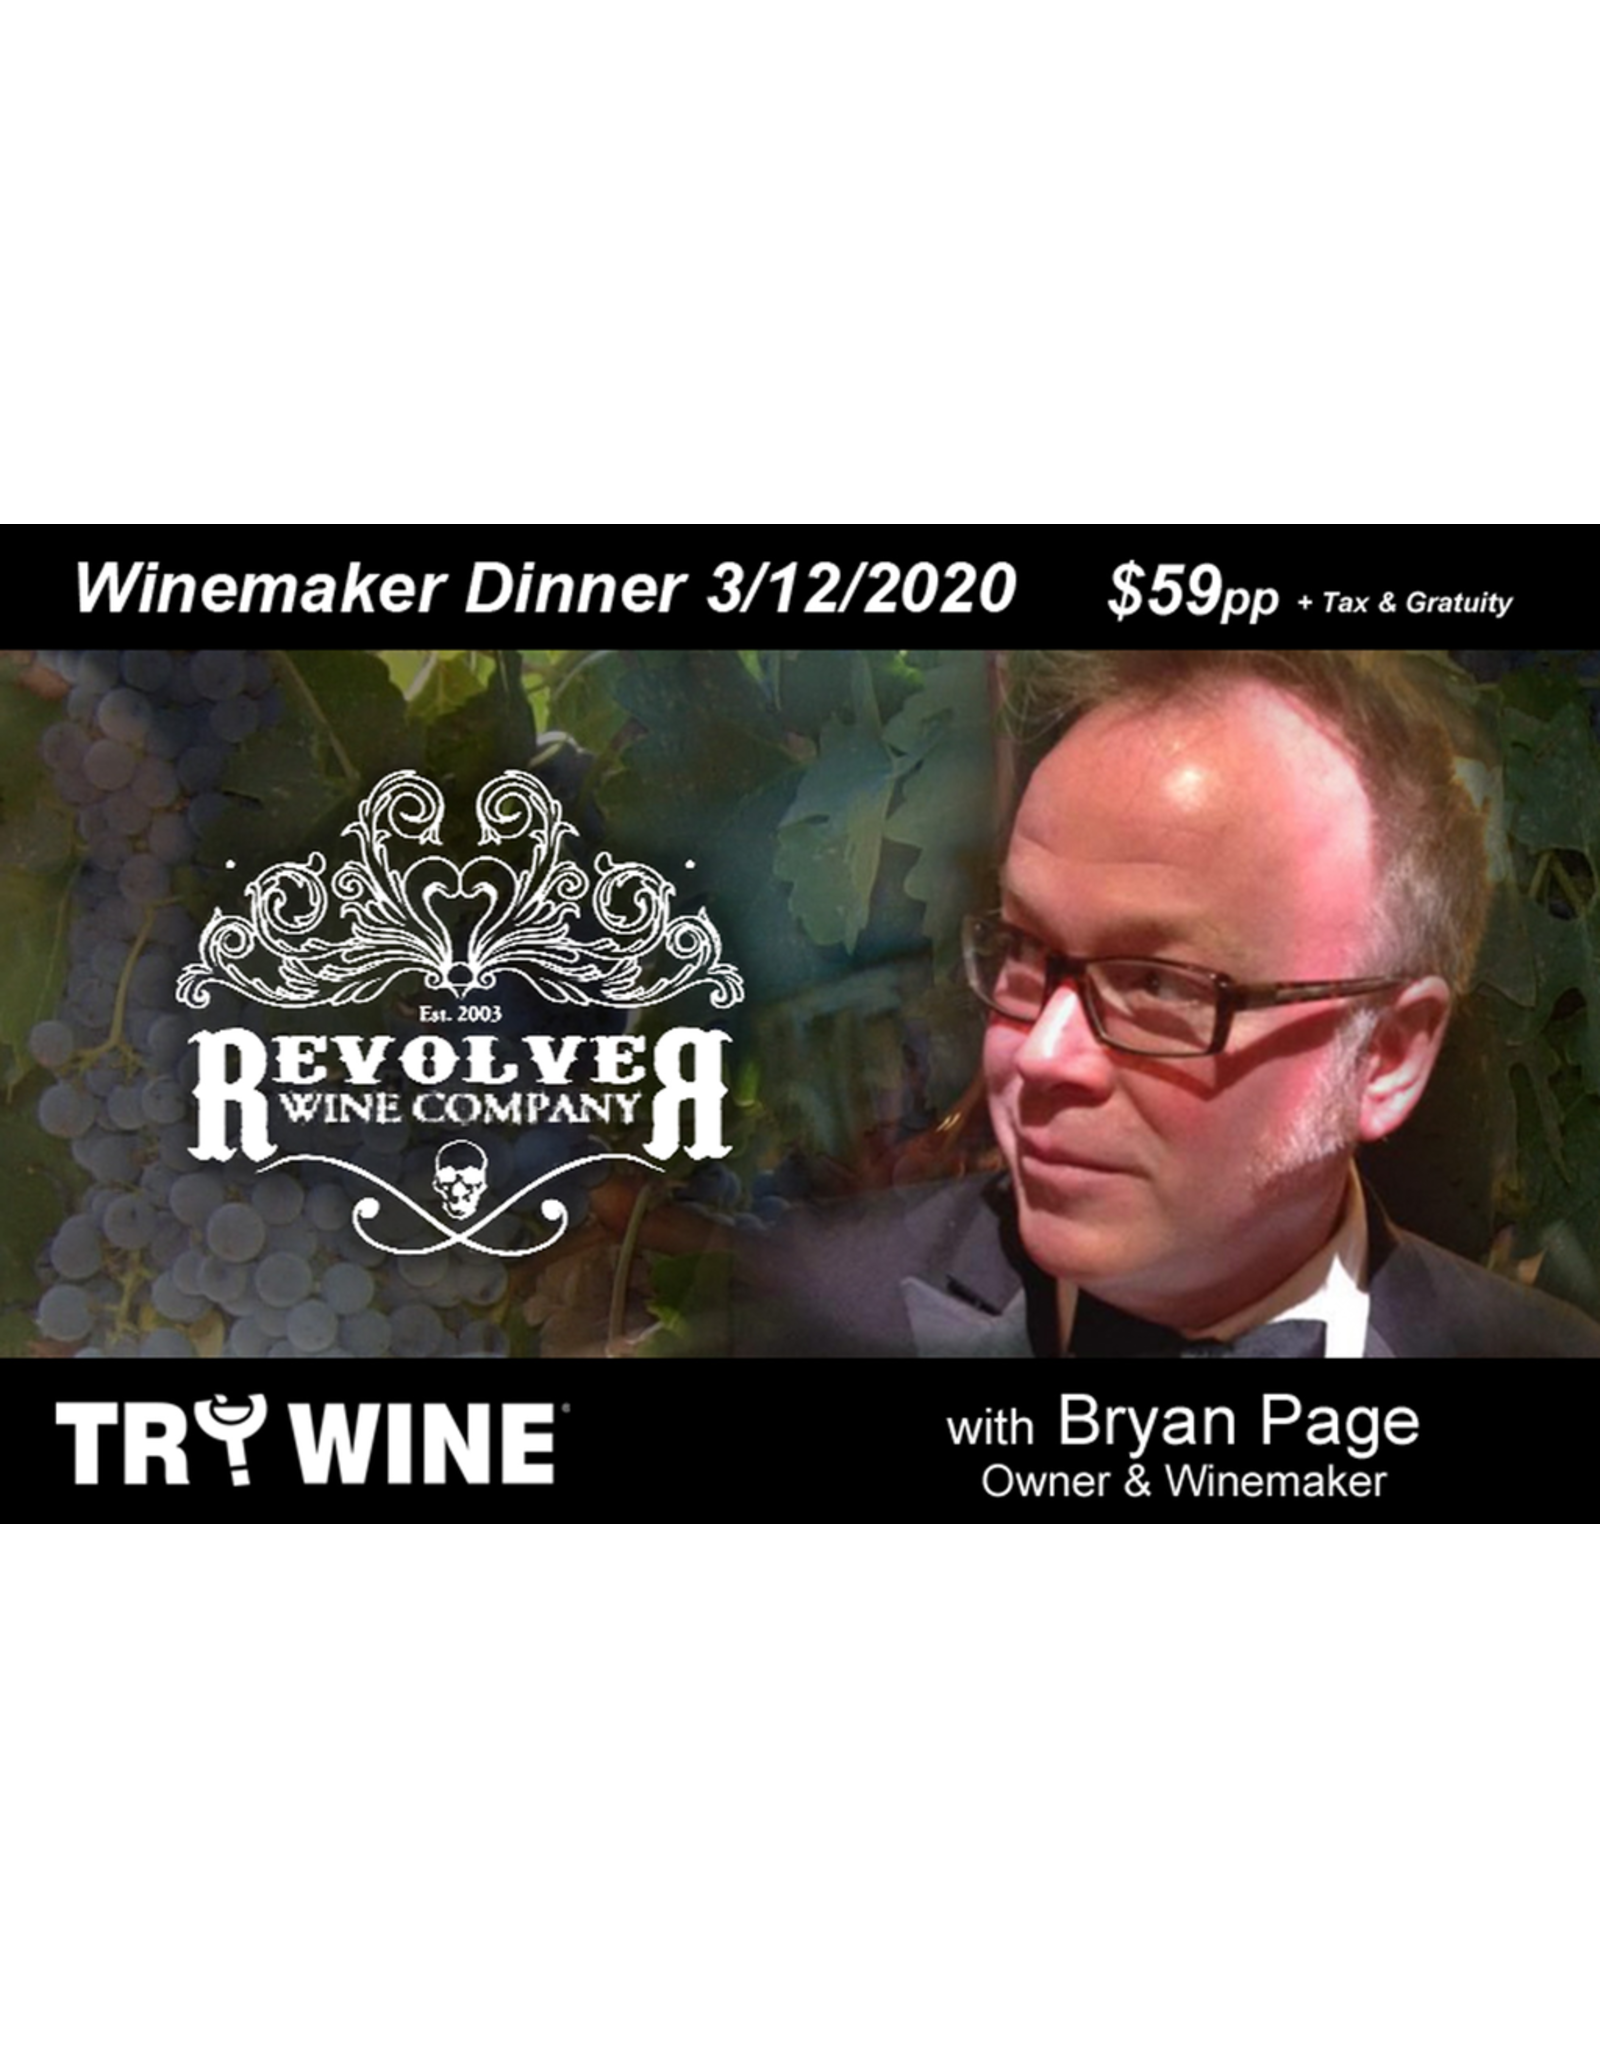 Special EVENTS REVOLVER Winemaker Dinner THU 3.12.20, Fully Transferable but NON-REFUNDABLE.